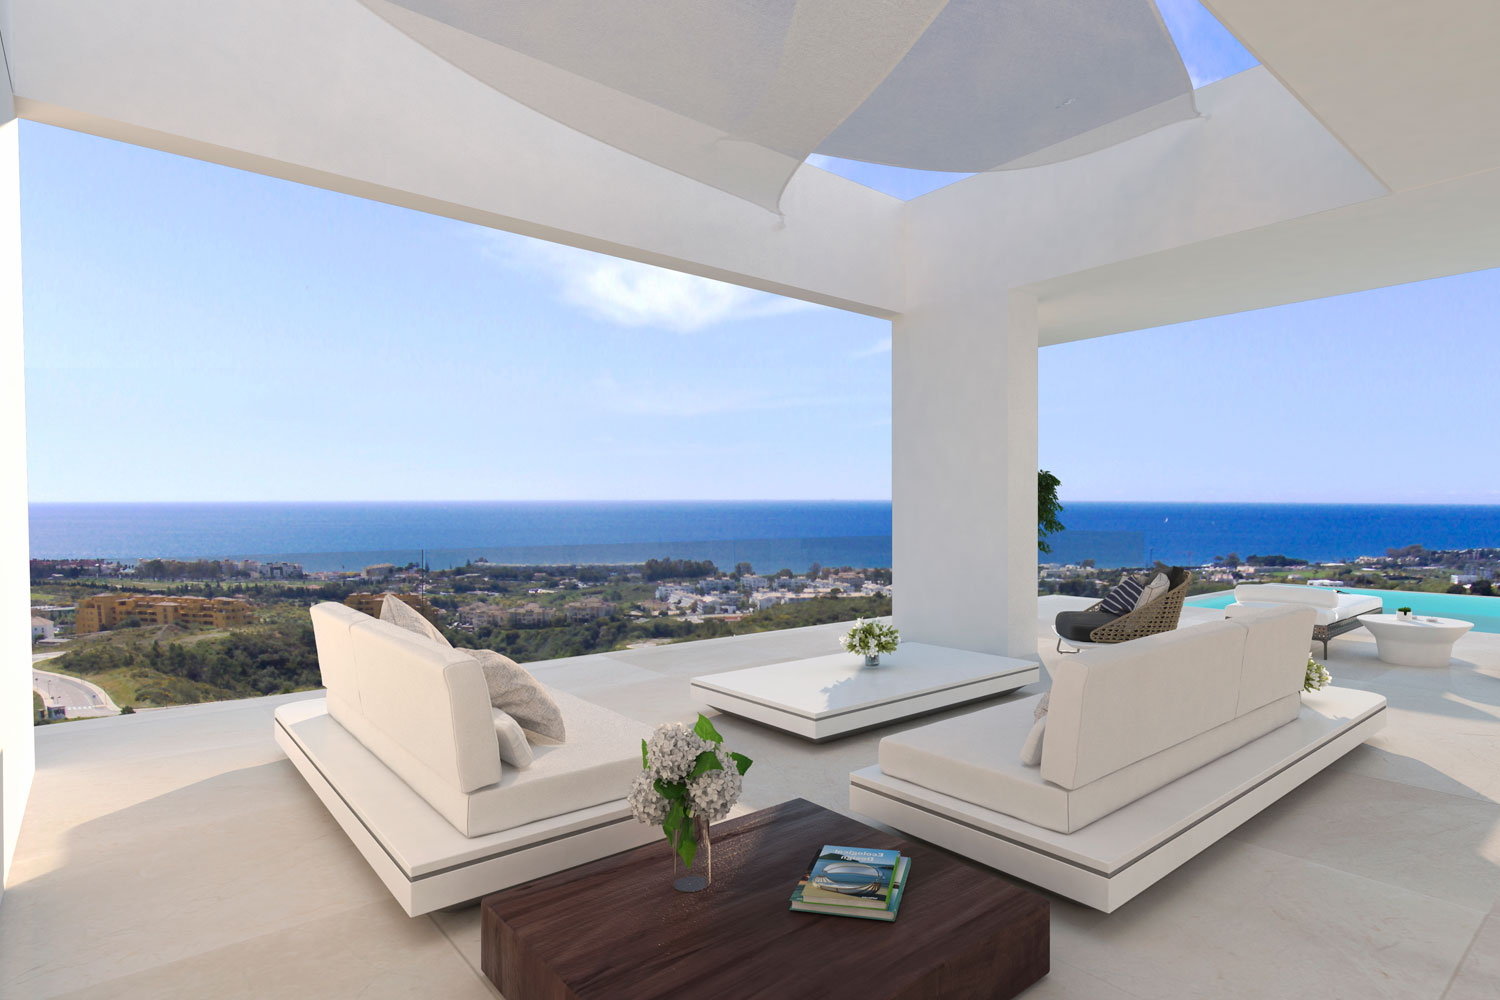 Created to enjoy the lovely climate and light of Andalusia all year round, the Villas are designed with large sliding doors to convert your terrace and pool into an extension of your lounge.